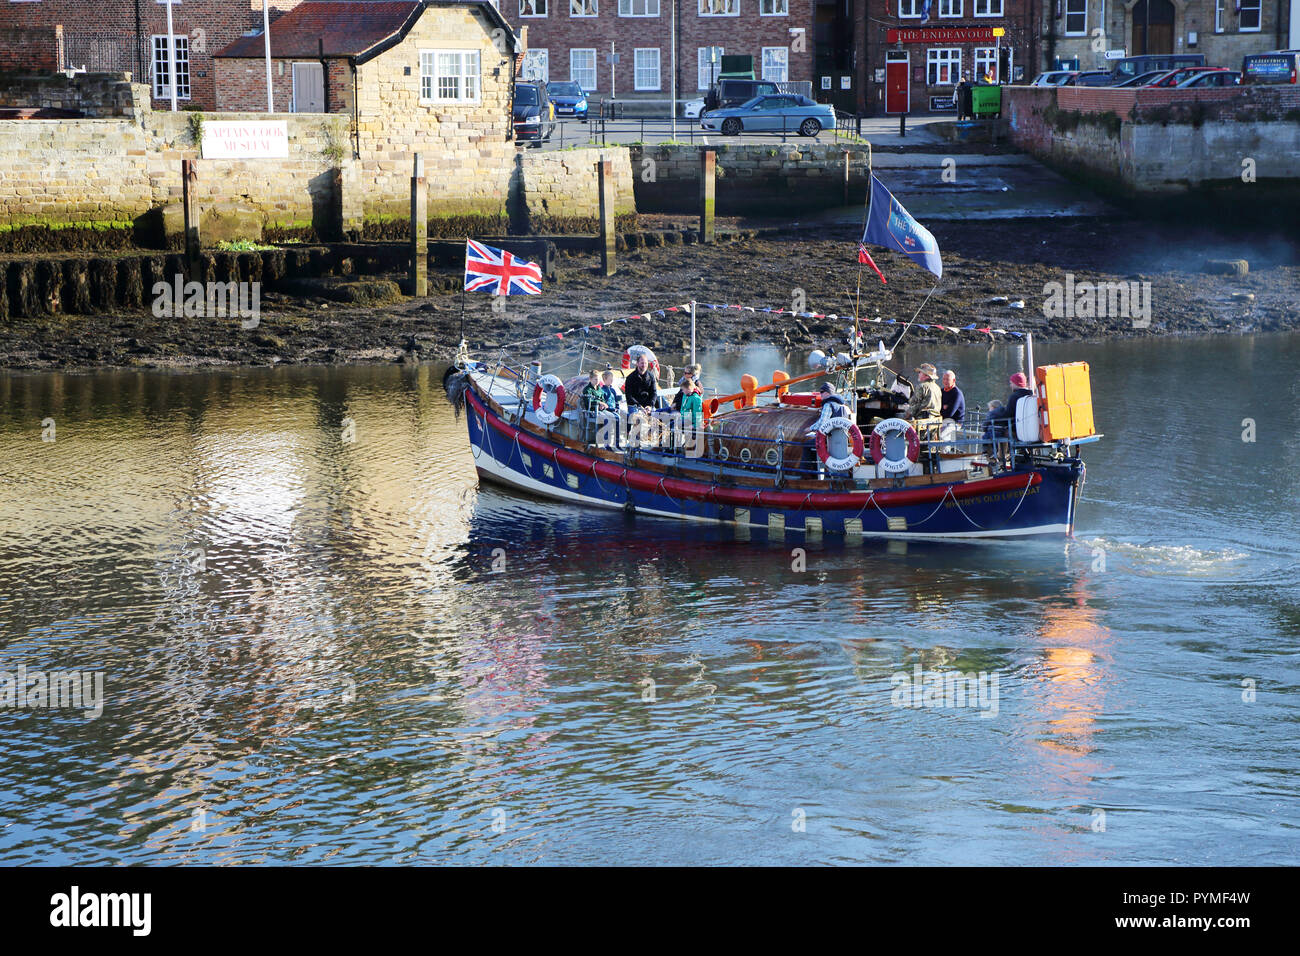 An ex-lifeboat leaves Whitby, North Yorkshire, UK harbour carrying tourists for a trip out to sea. - Stock Image